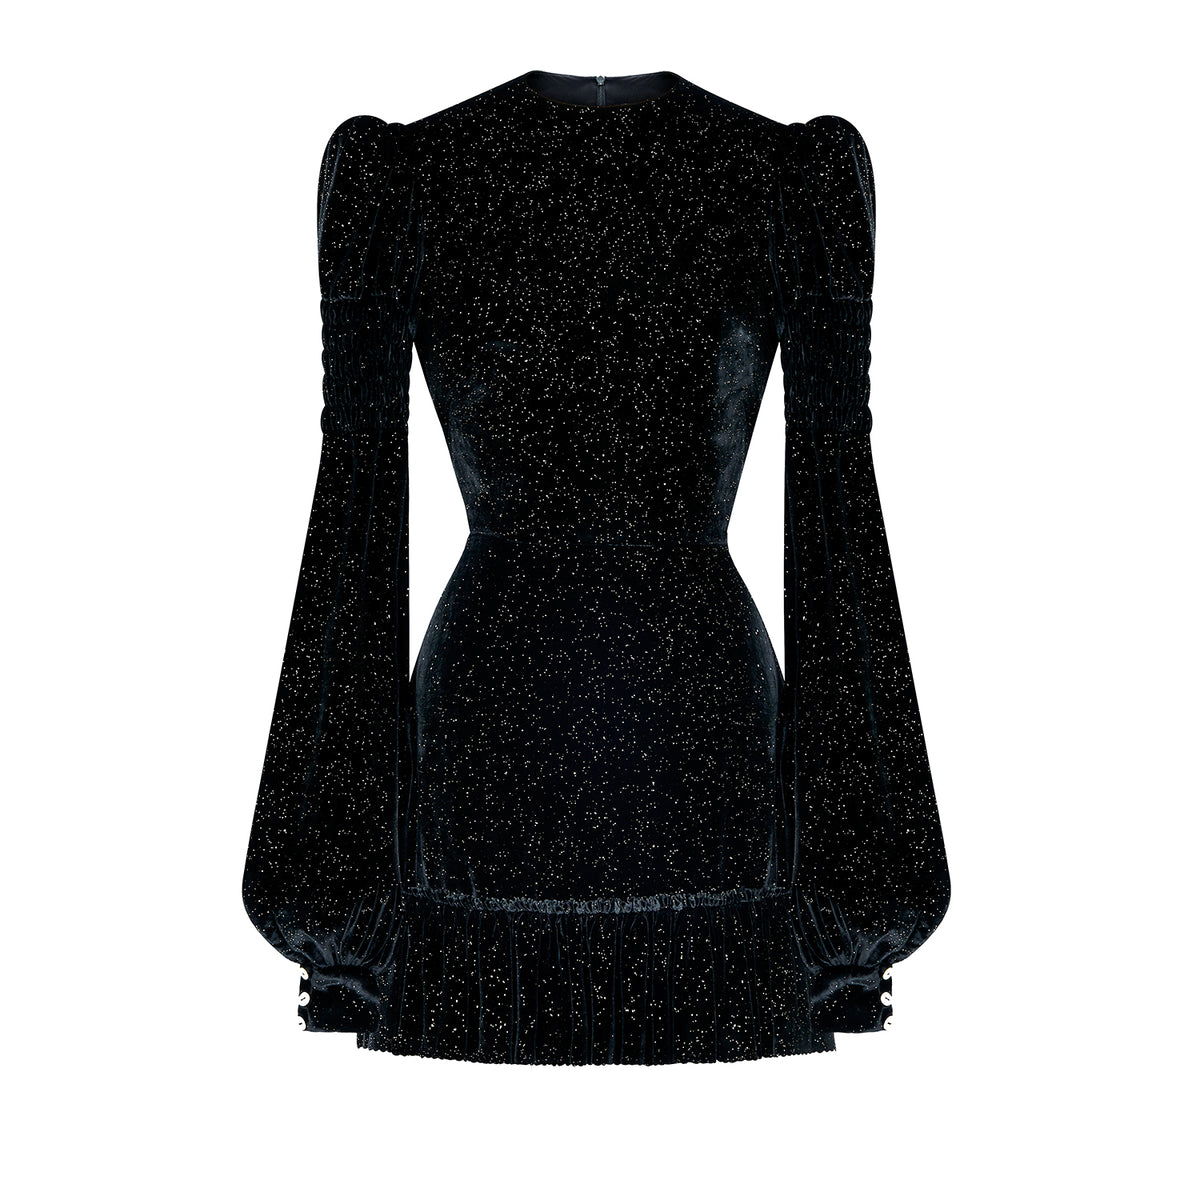 THE SPARKLE VELVET RUNAWAY DRESS